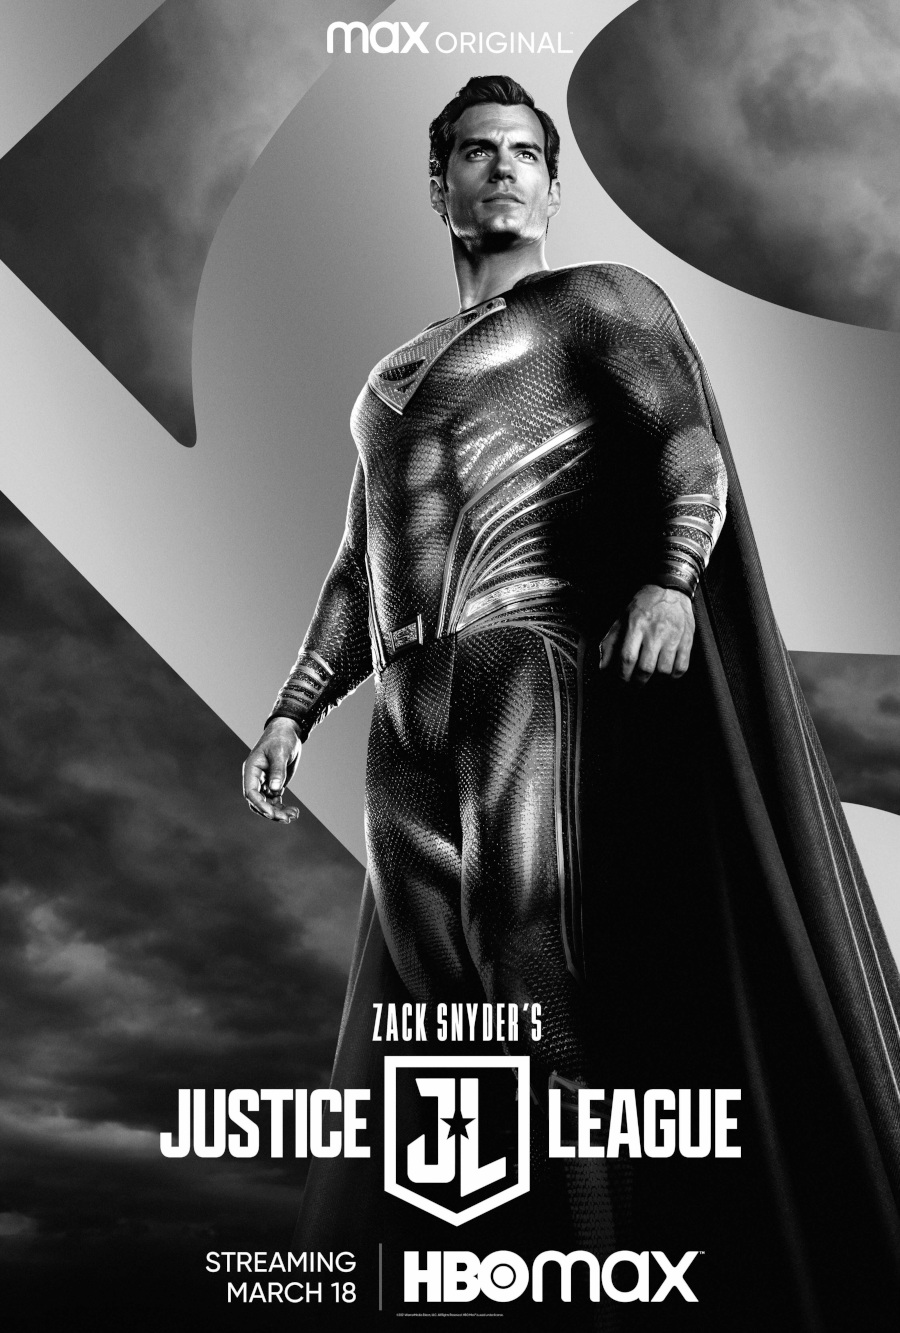 Superman Henry Cavill Zack Snyder's Justice league poster